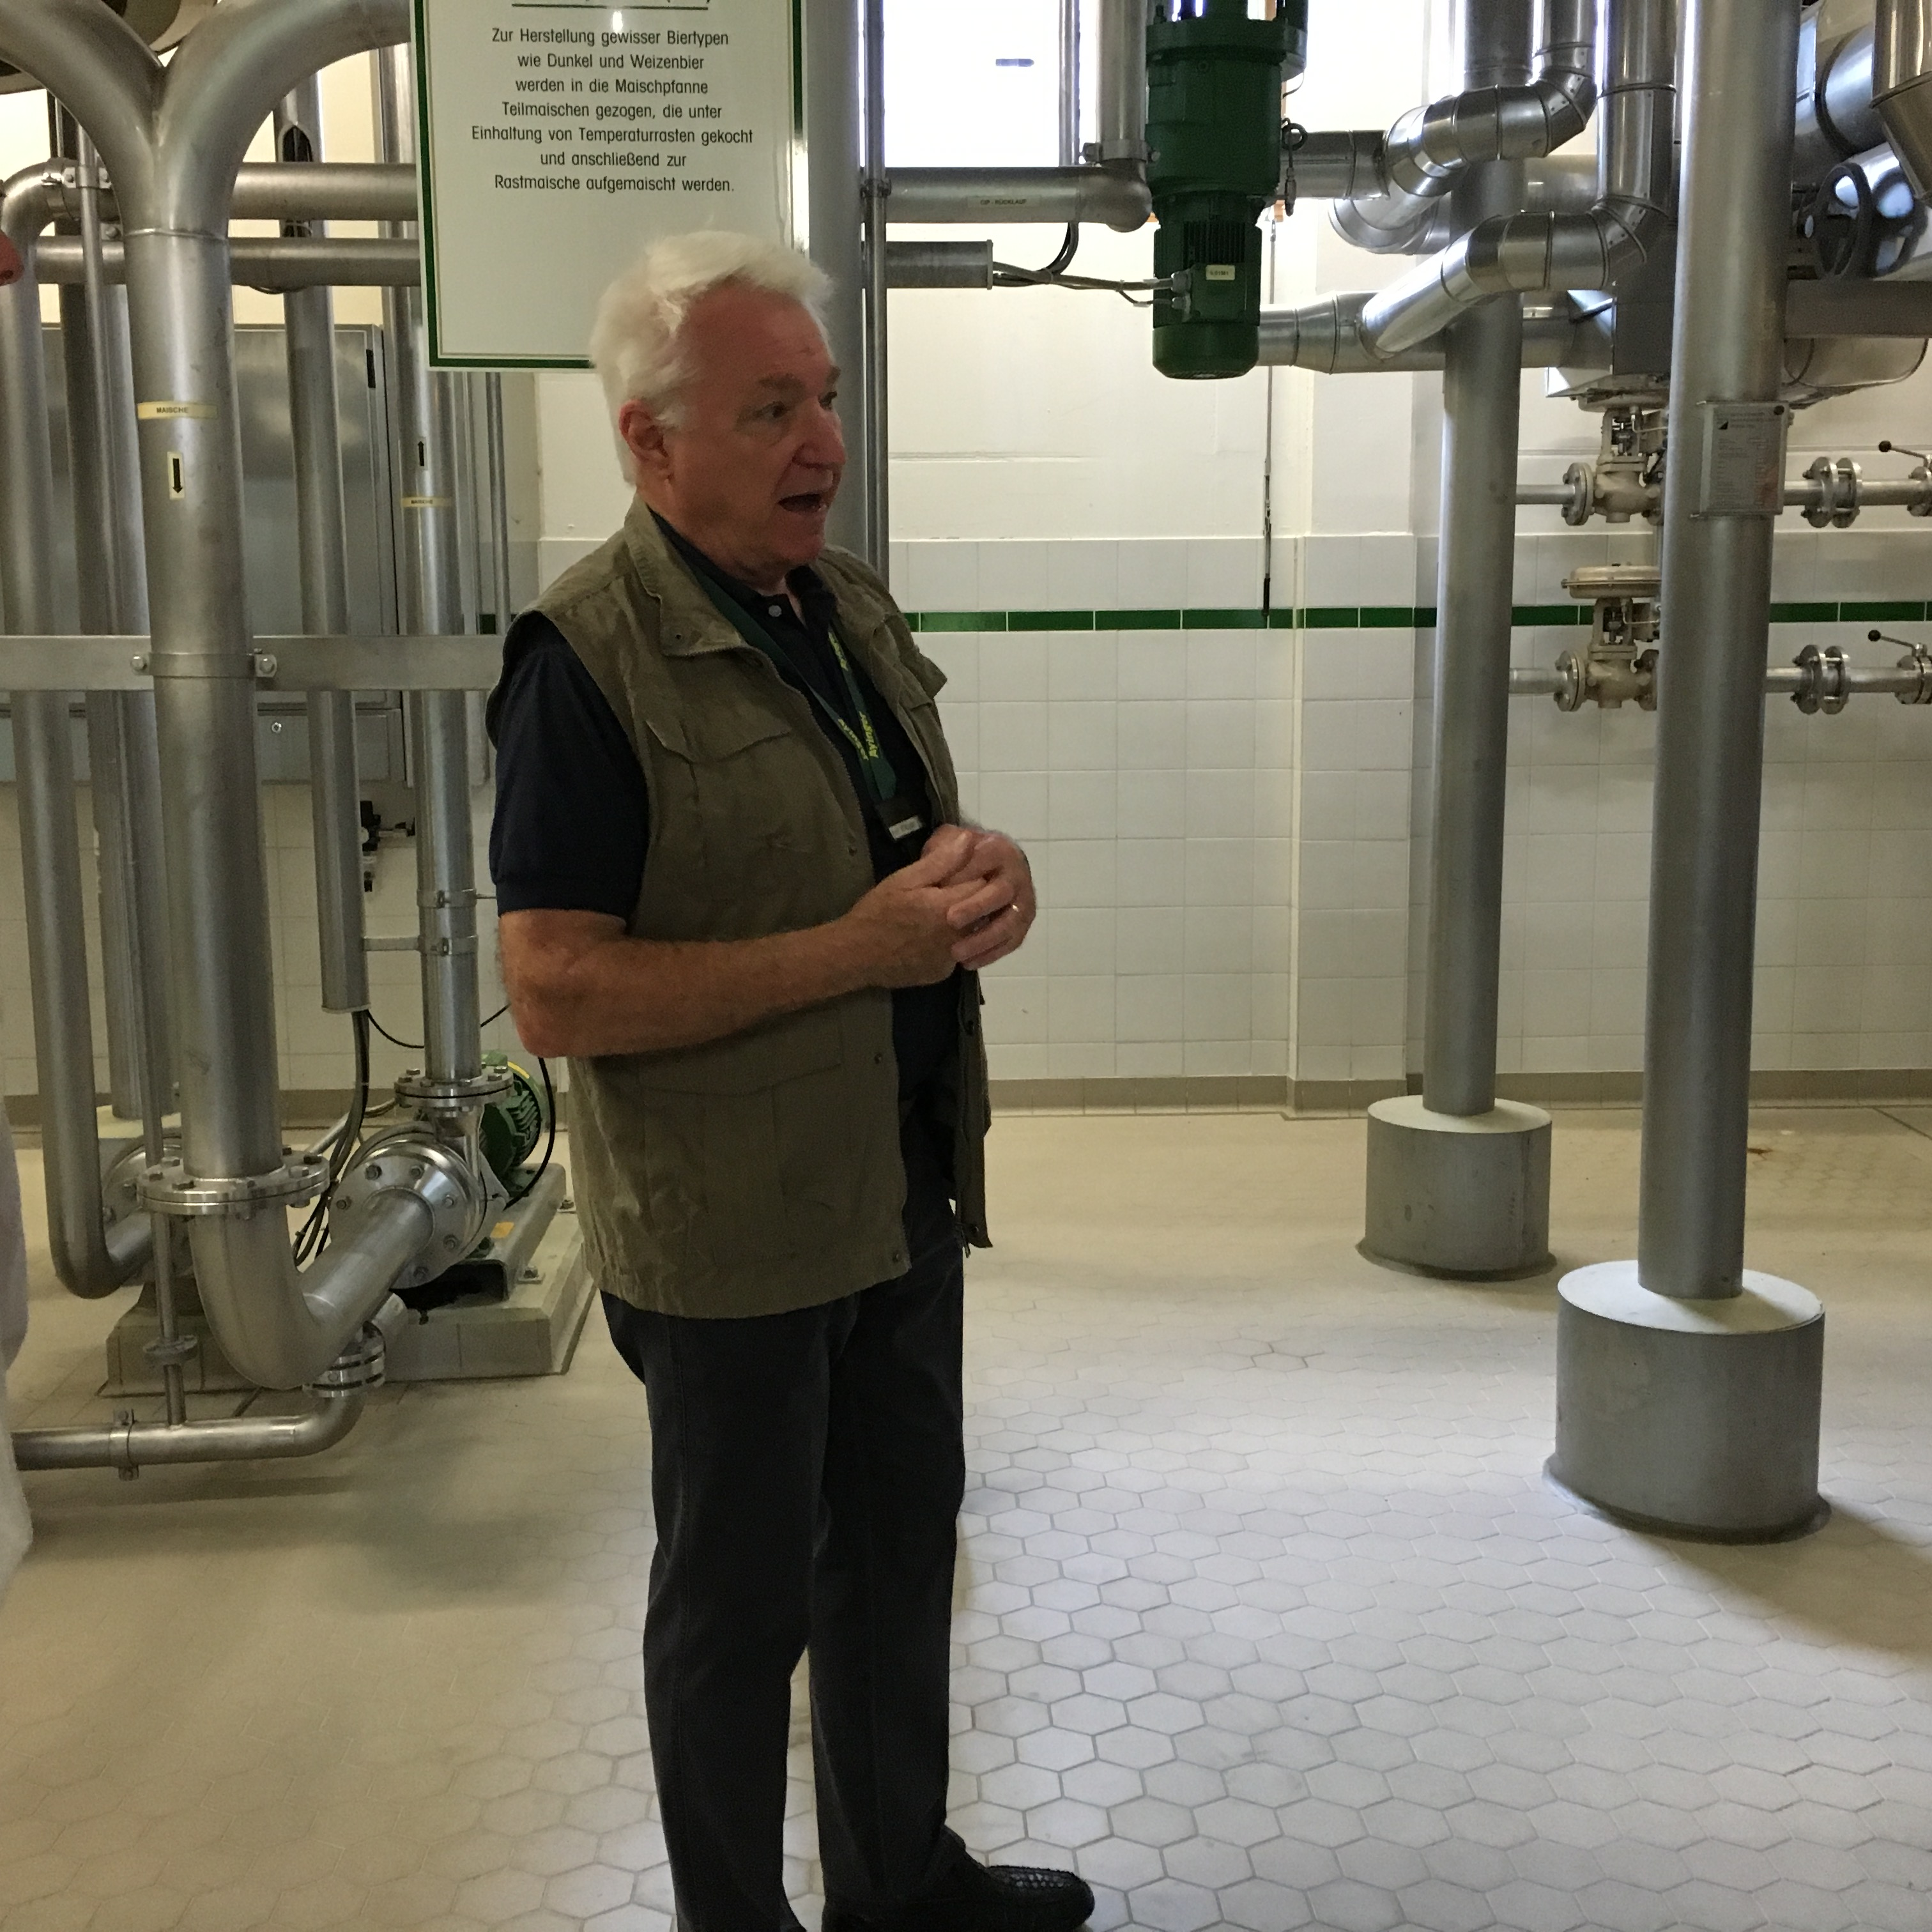 Ayinger tour guide Ralf Wappler giving us information on the brewing process....in German.